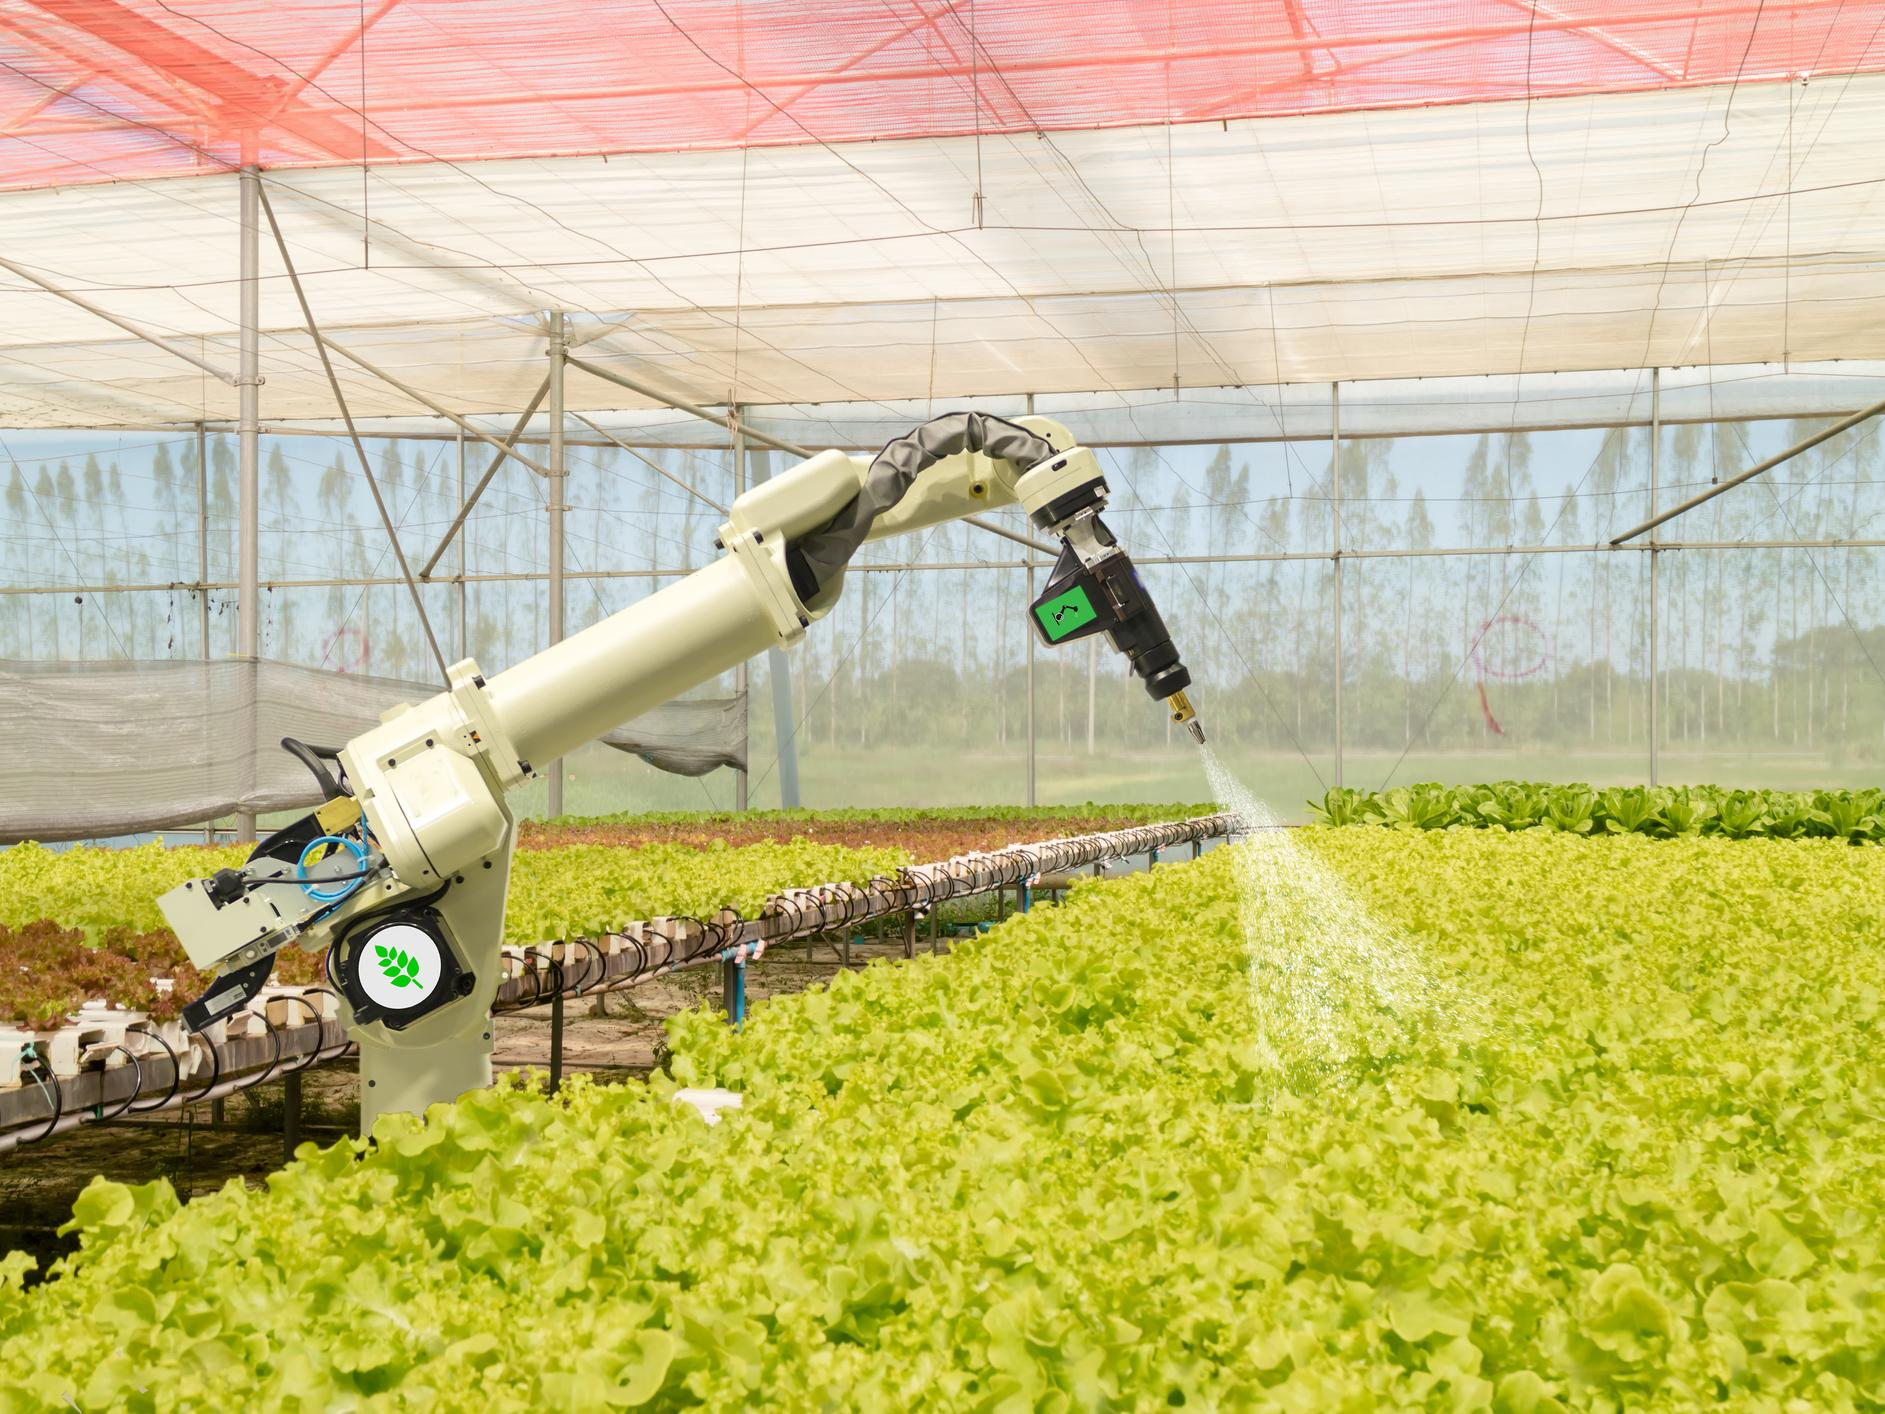 Robots take over farms faster than expected through autonomous equipment start-ups